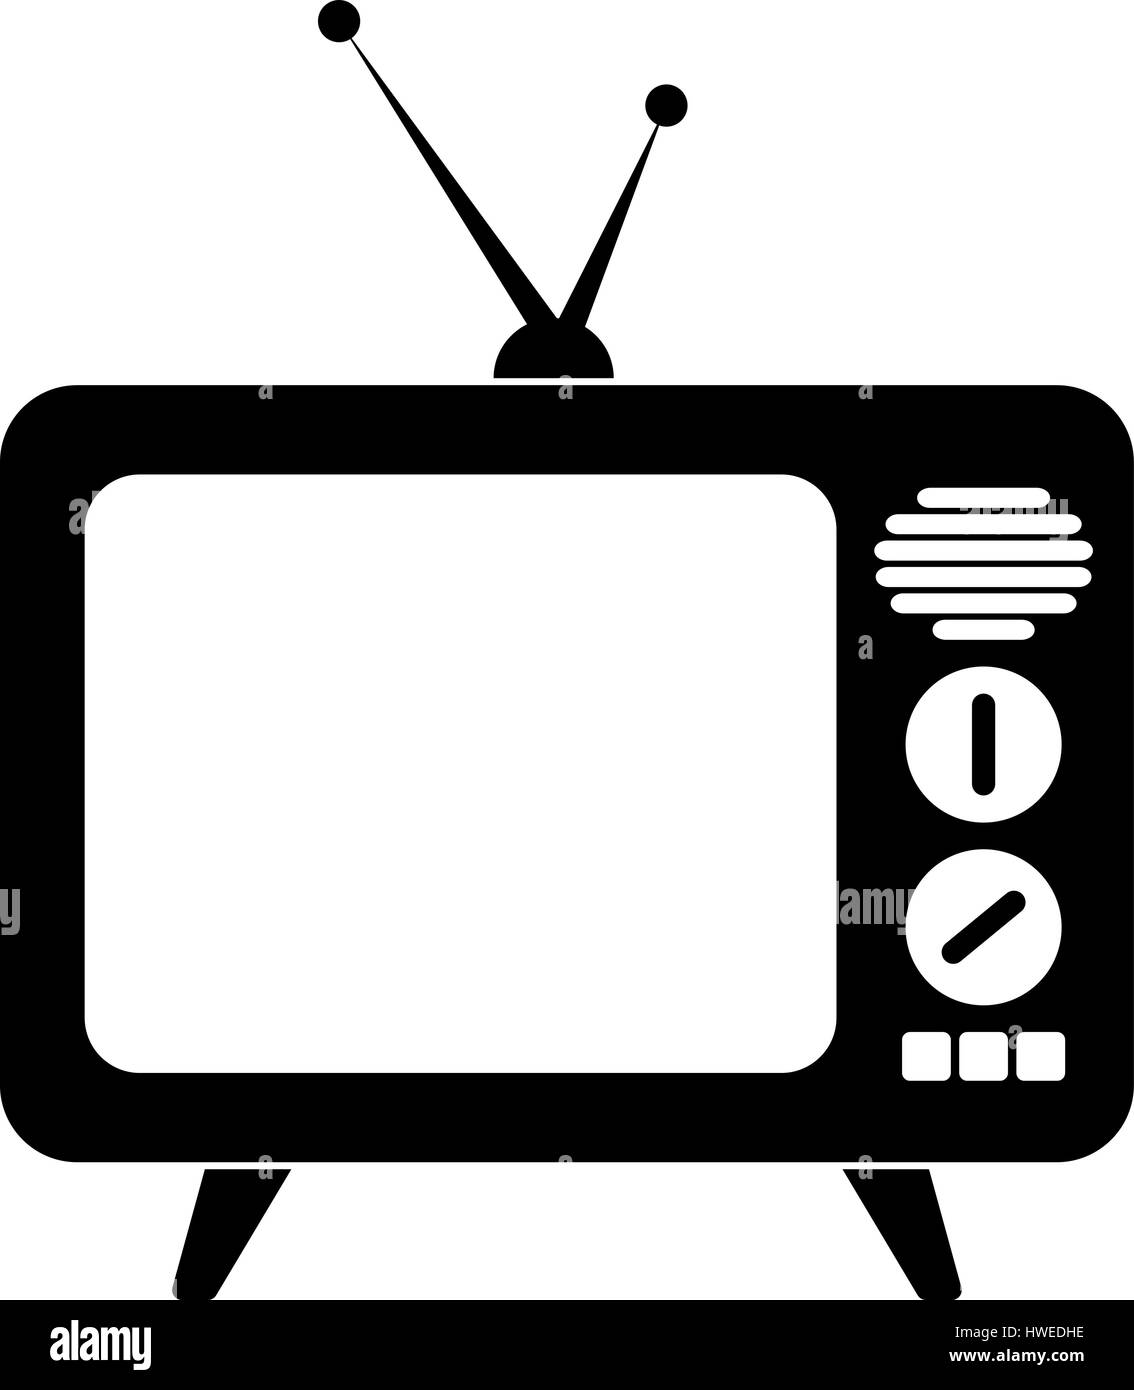 TV old vector illustration in black color on a white background - Stock Image